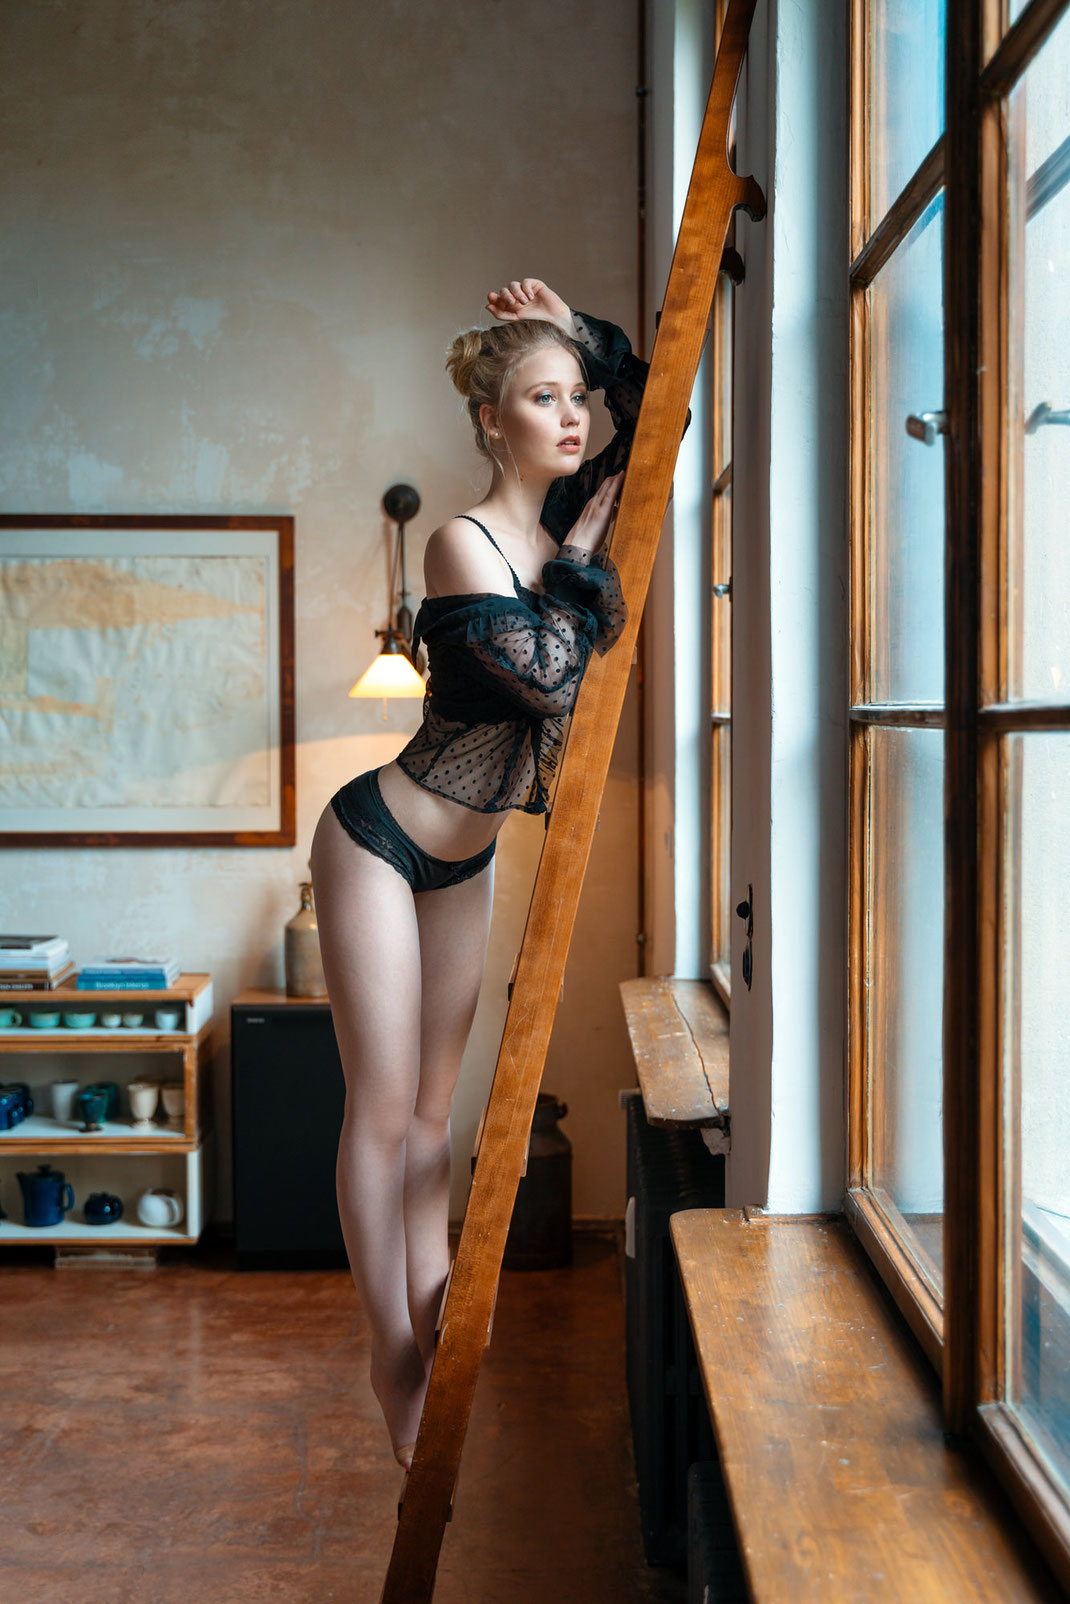 Up the ladder - Antonia - Markus Hertzsch - Portrait - Photography - Model - Girl - Ladder - Window -Lingerie - Body - Pose